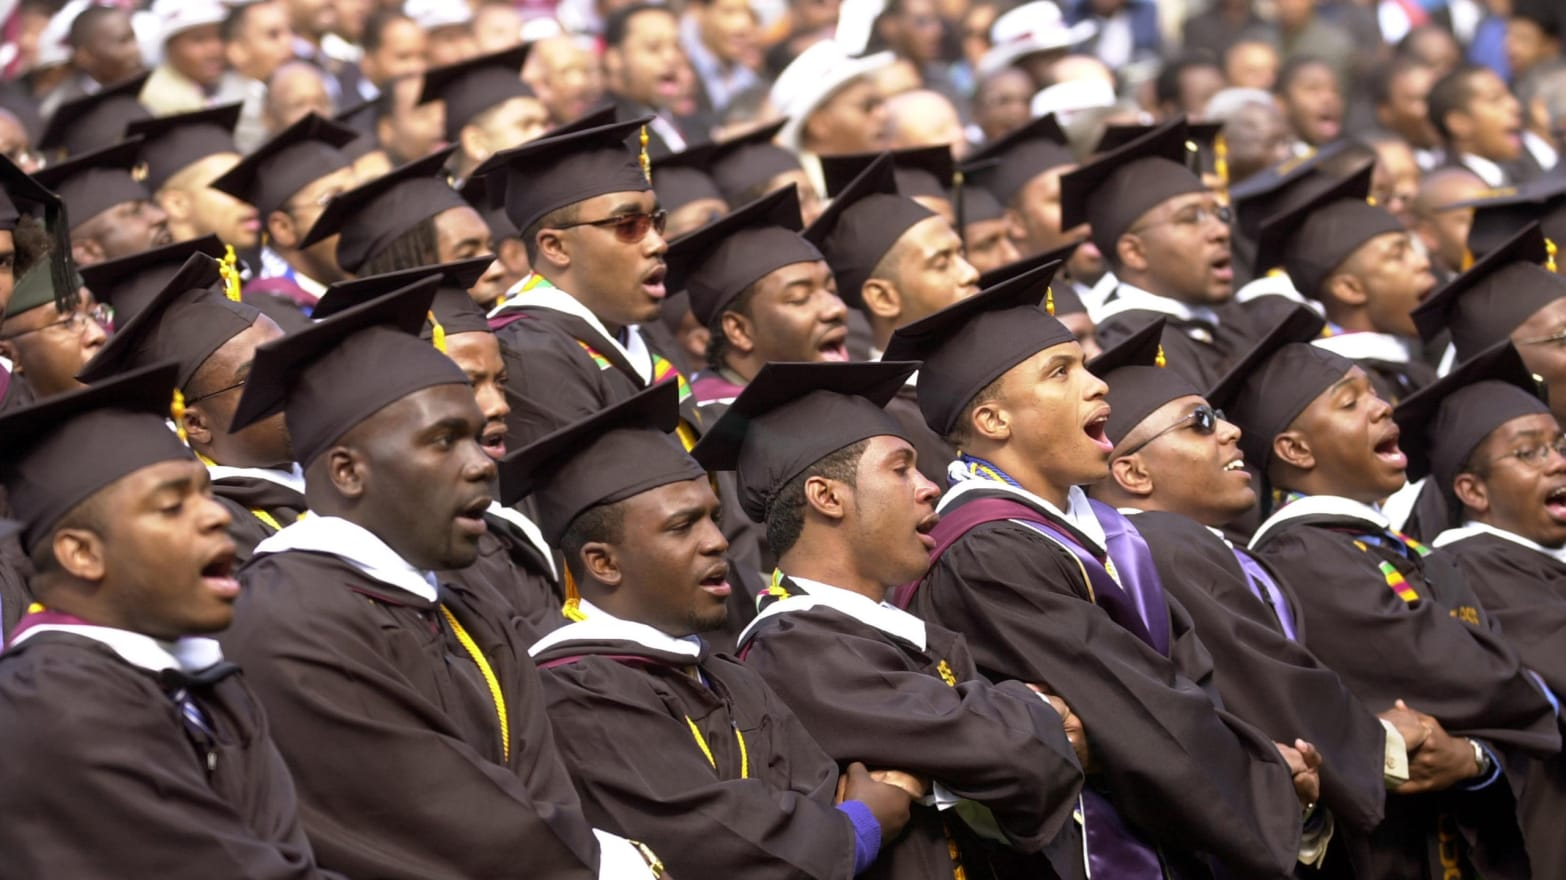 Obama Commencement Address at Morehouse Turns Into Controversy